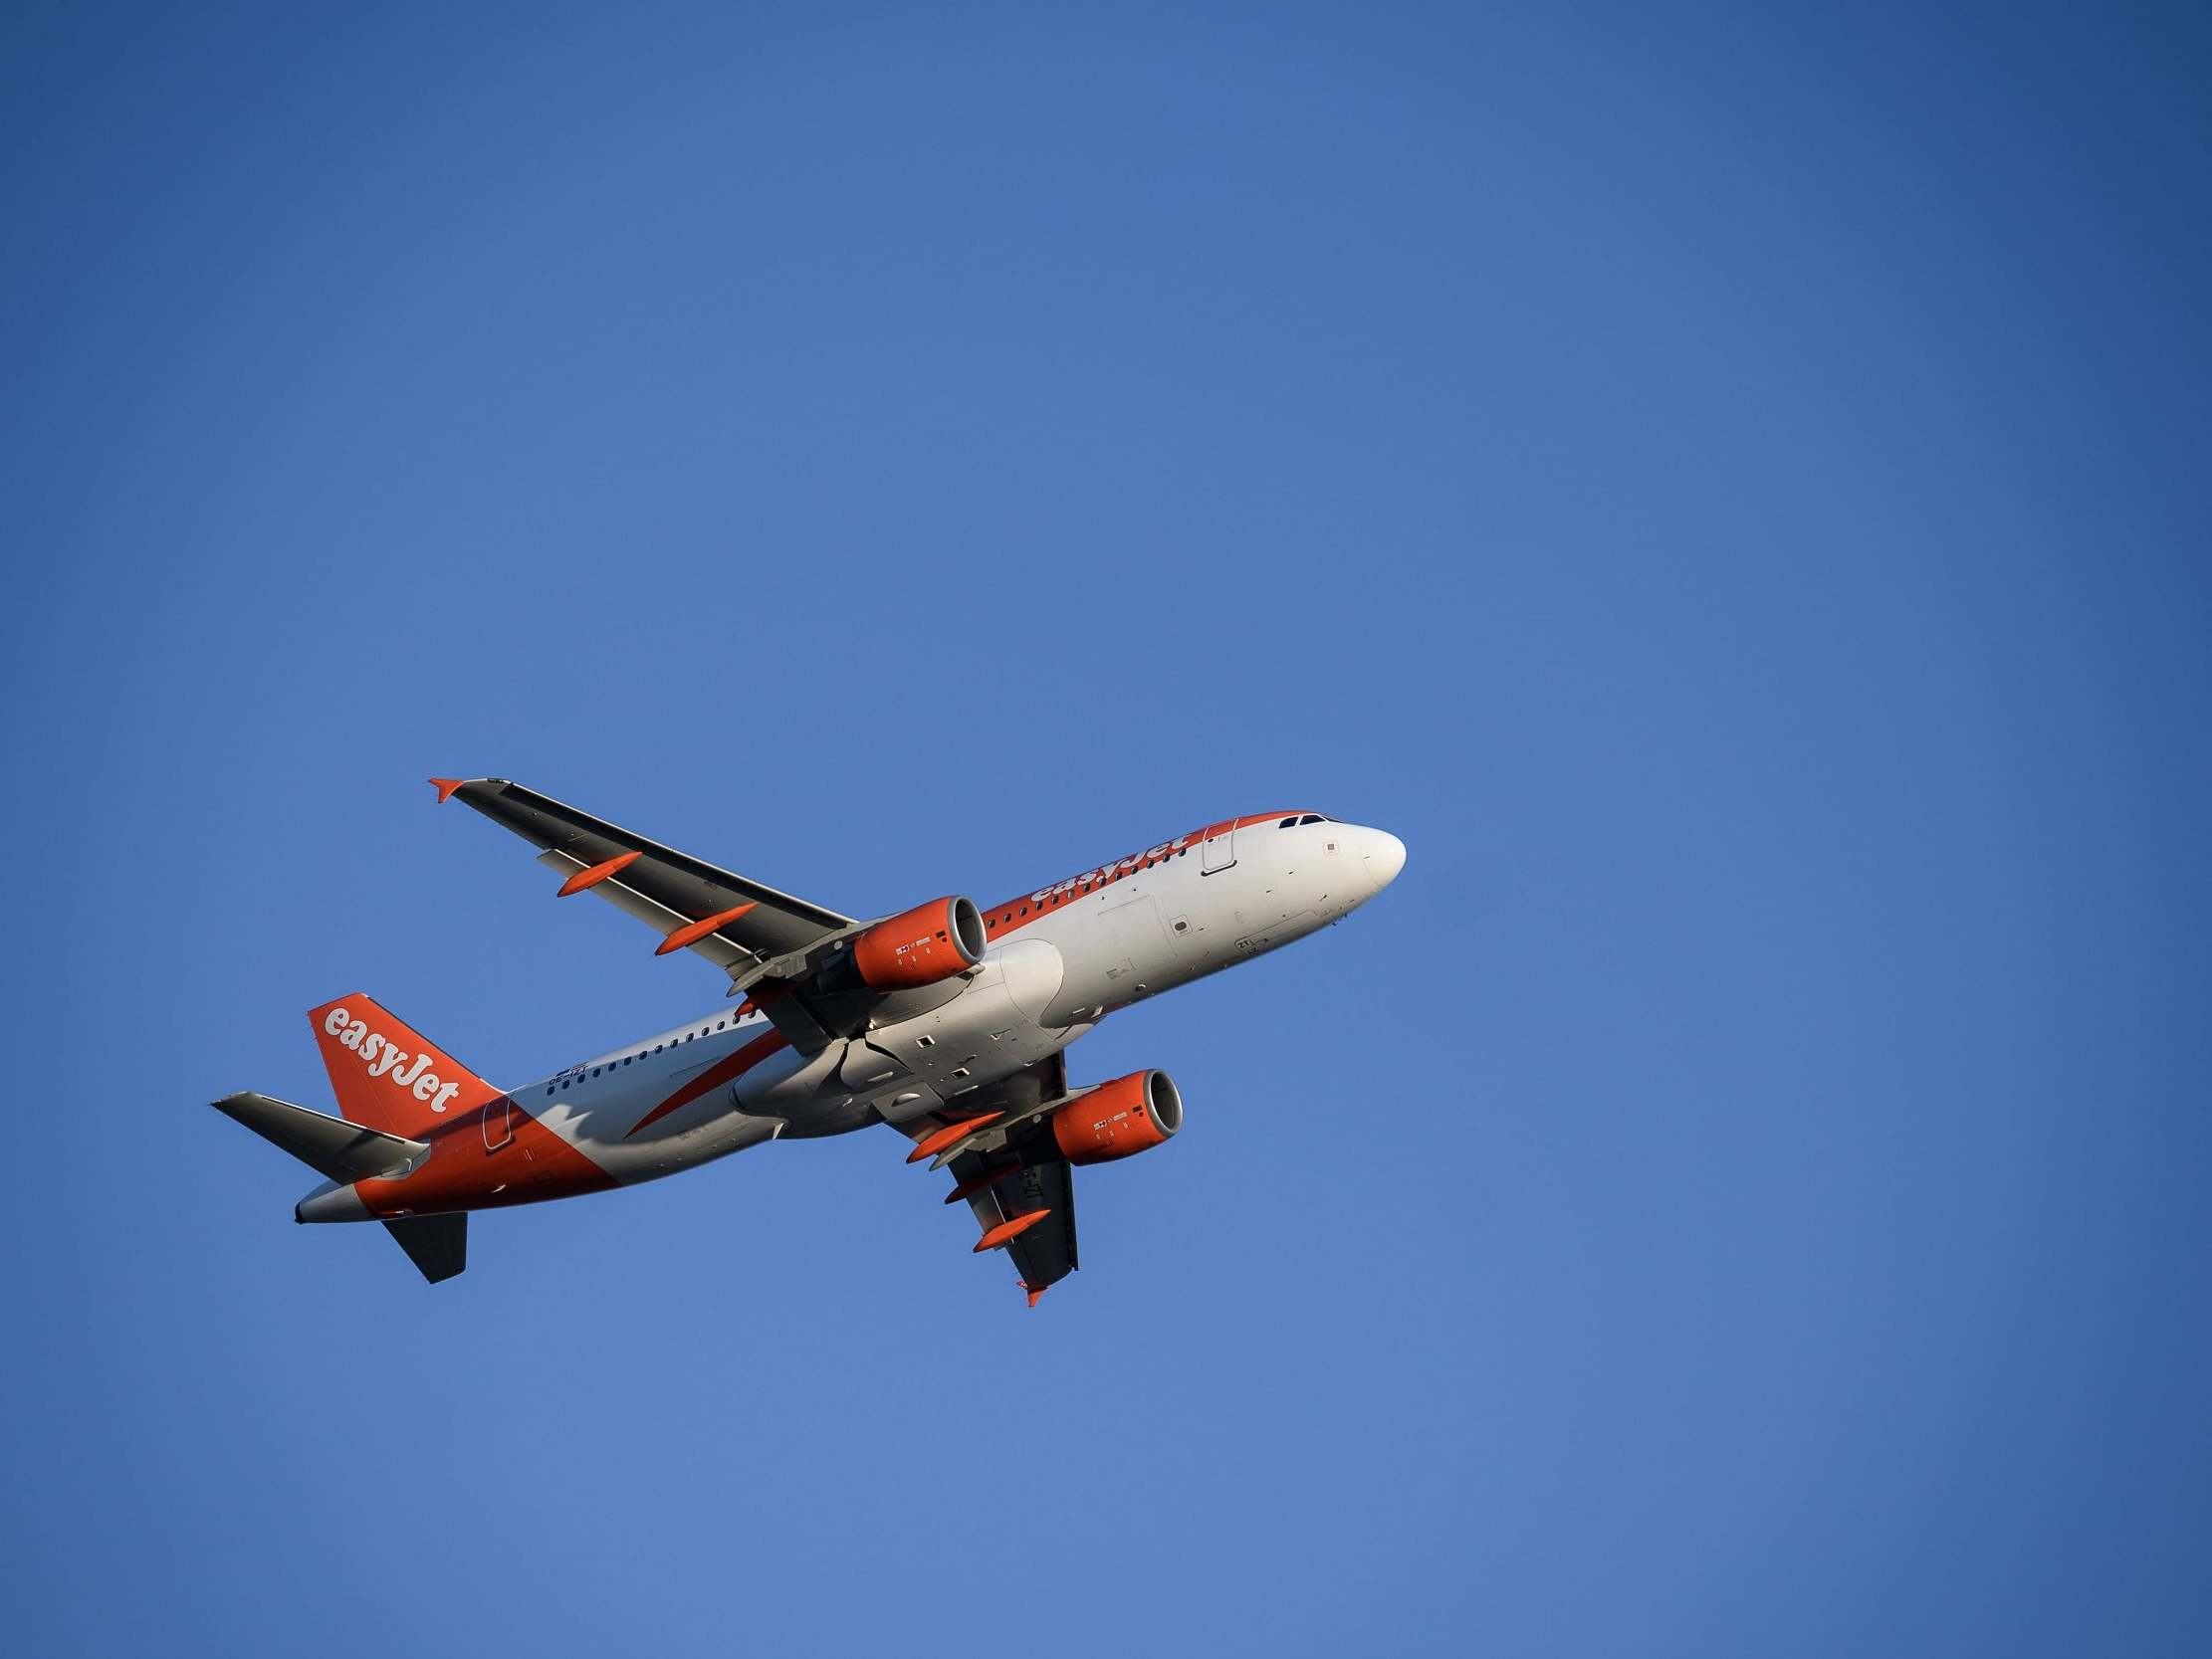 EasyJet wants to charge family £400 more to change flight cancelled by Storm Dennis